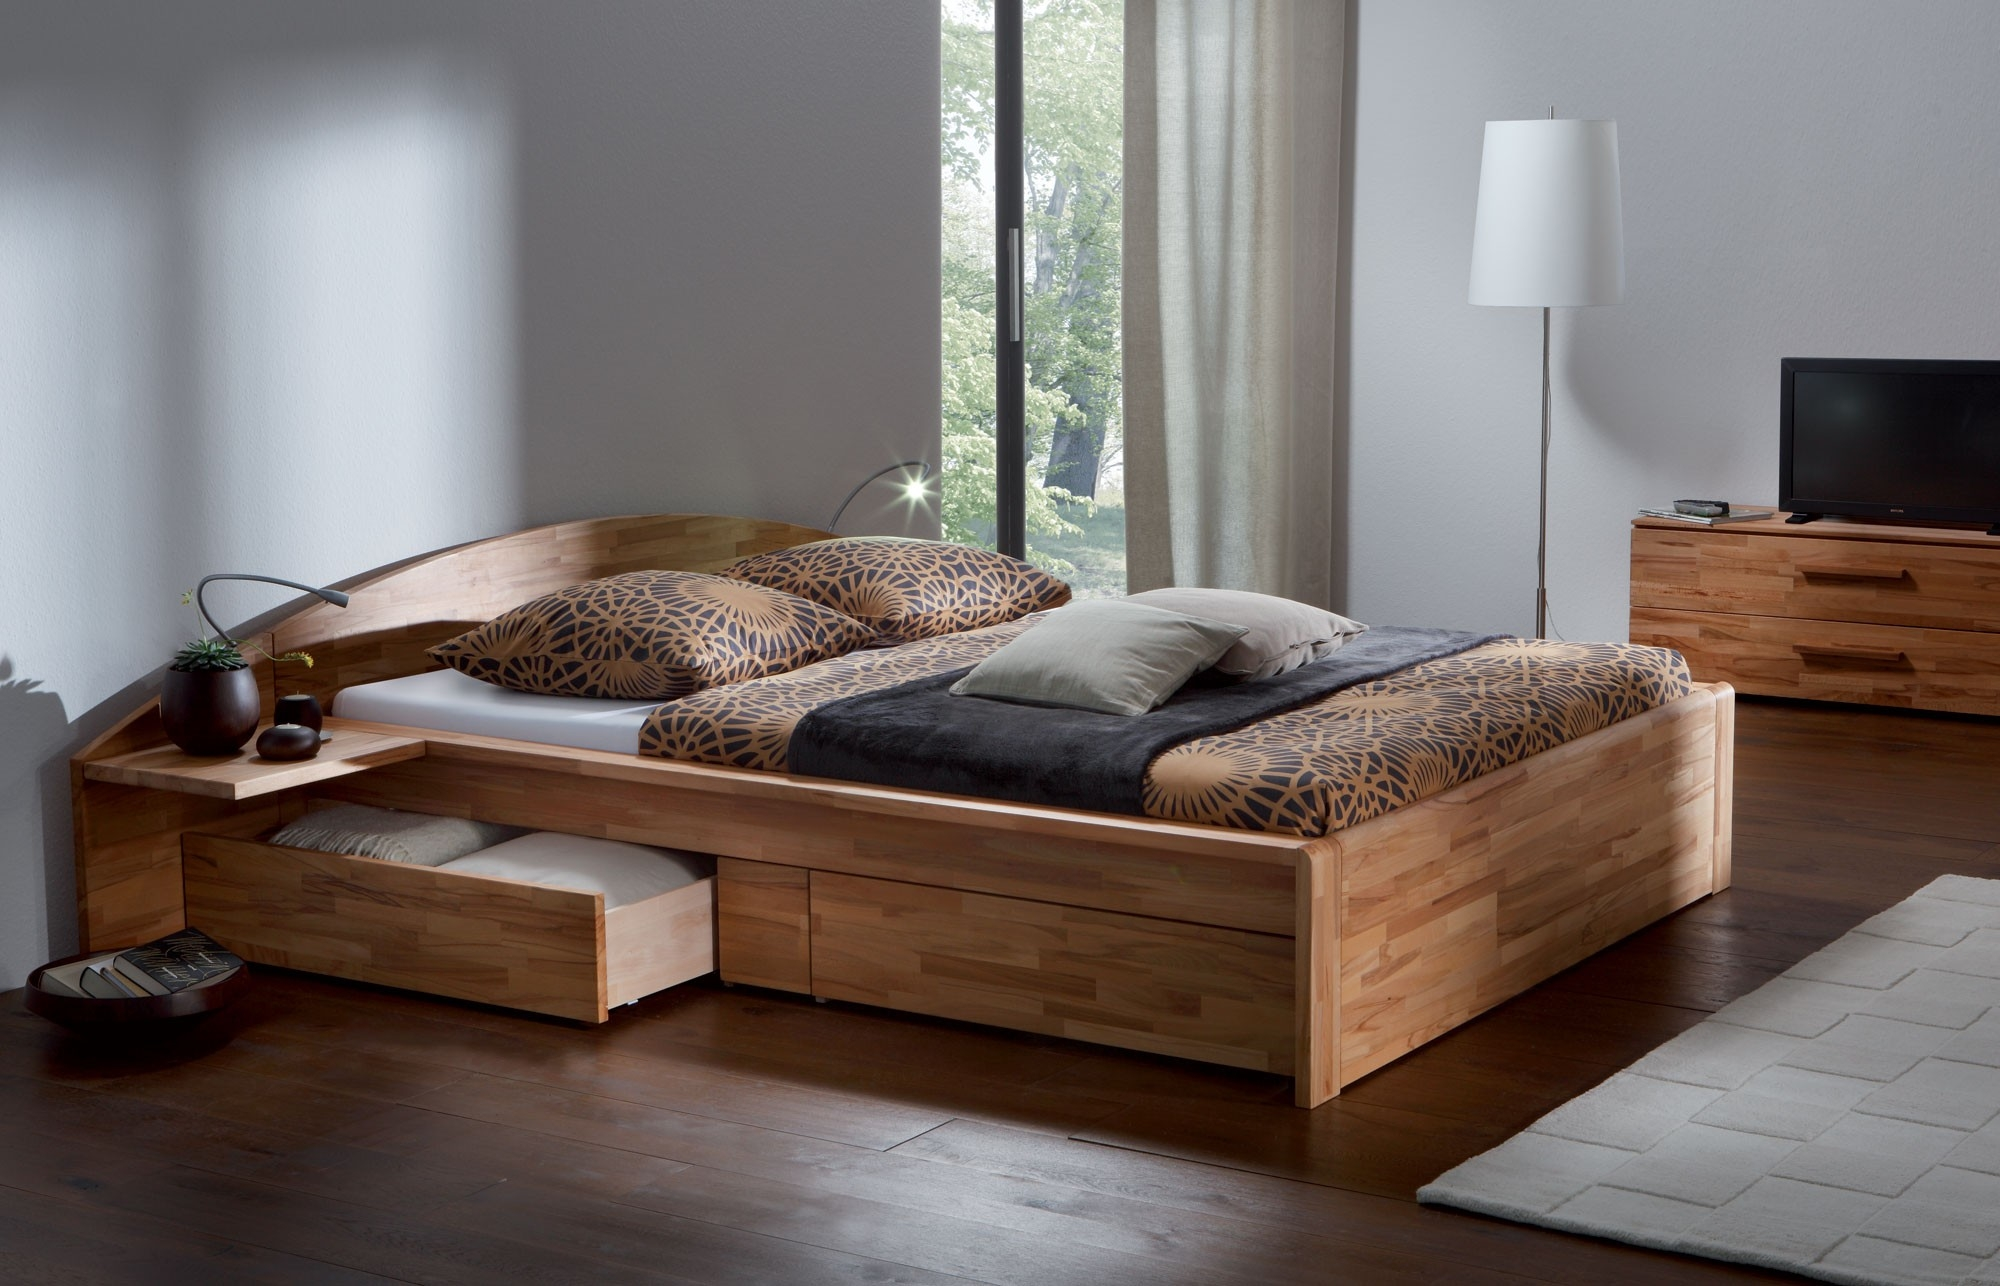 Solid Wood Box Bed Frame